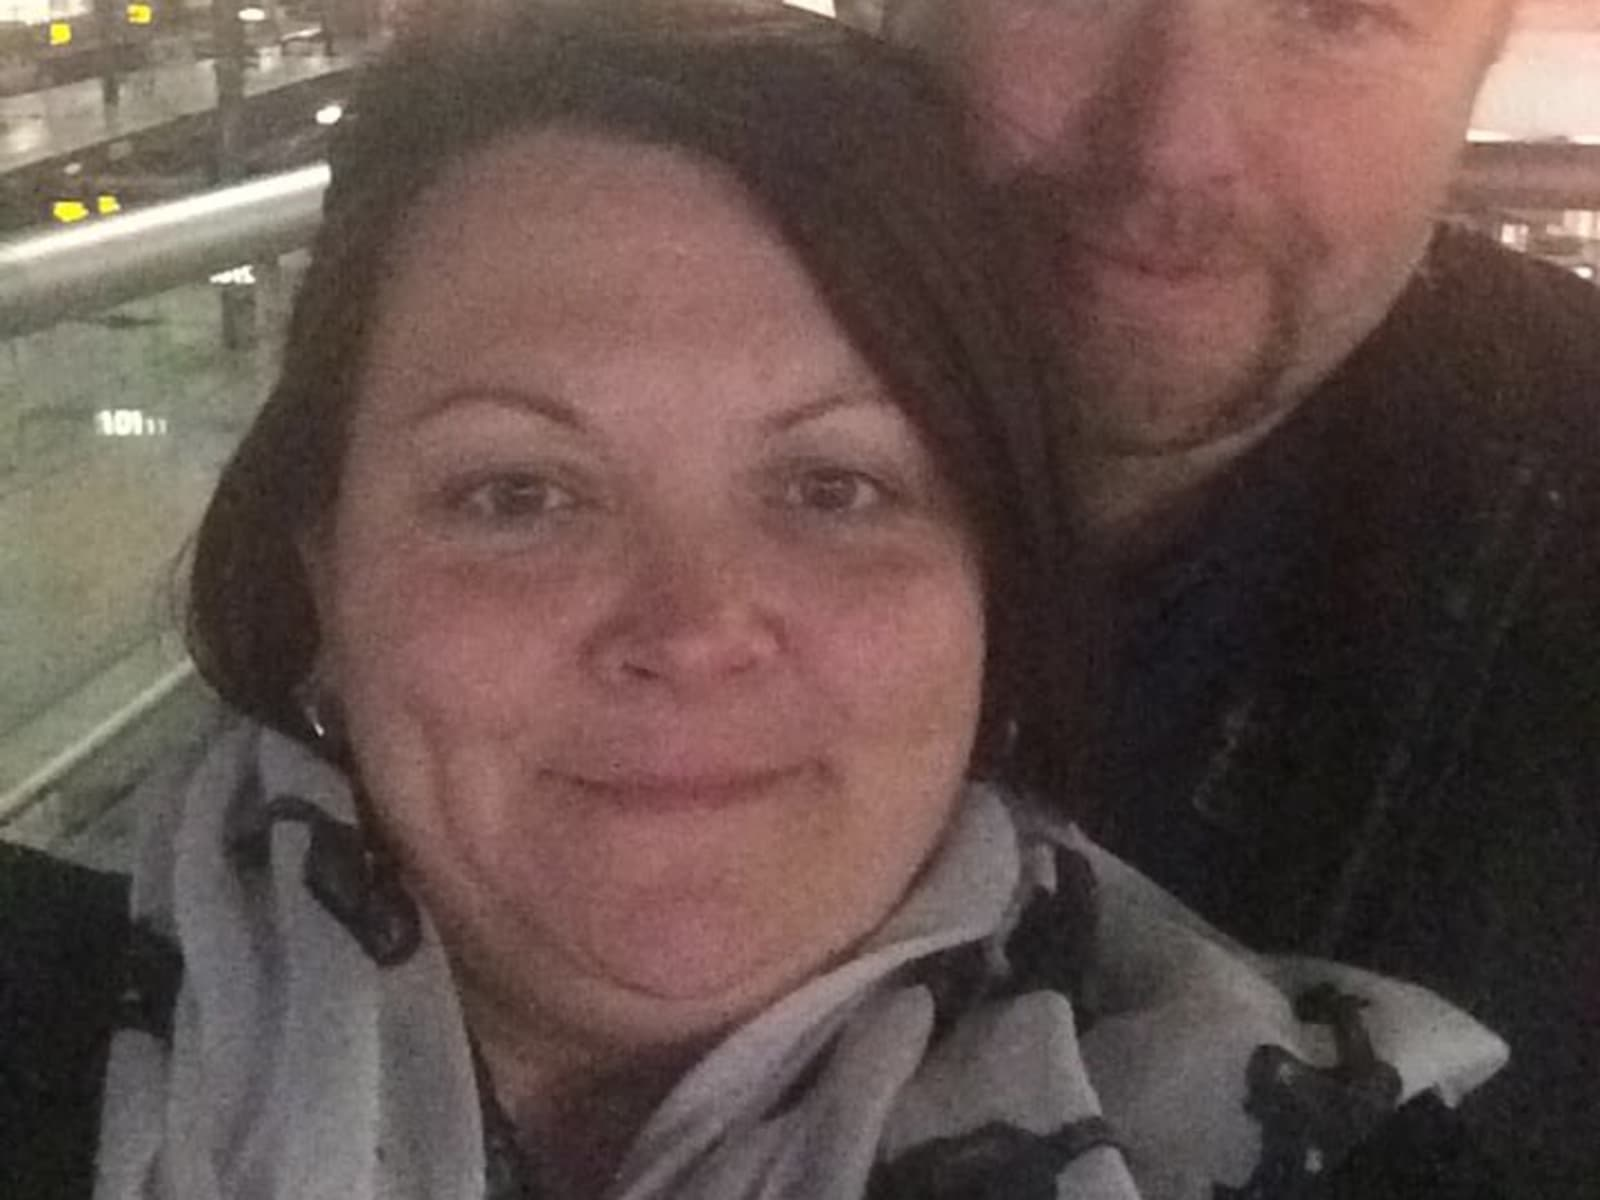 Stacey & Ian from York, United Kingdom